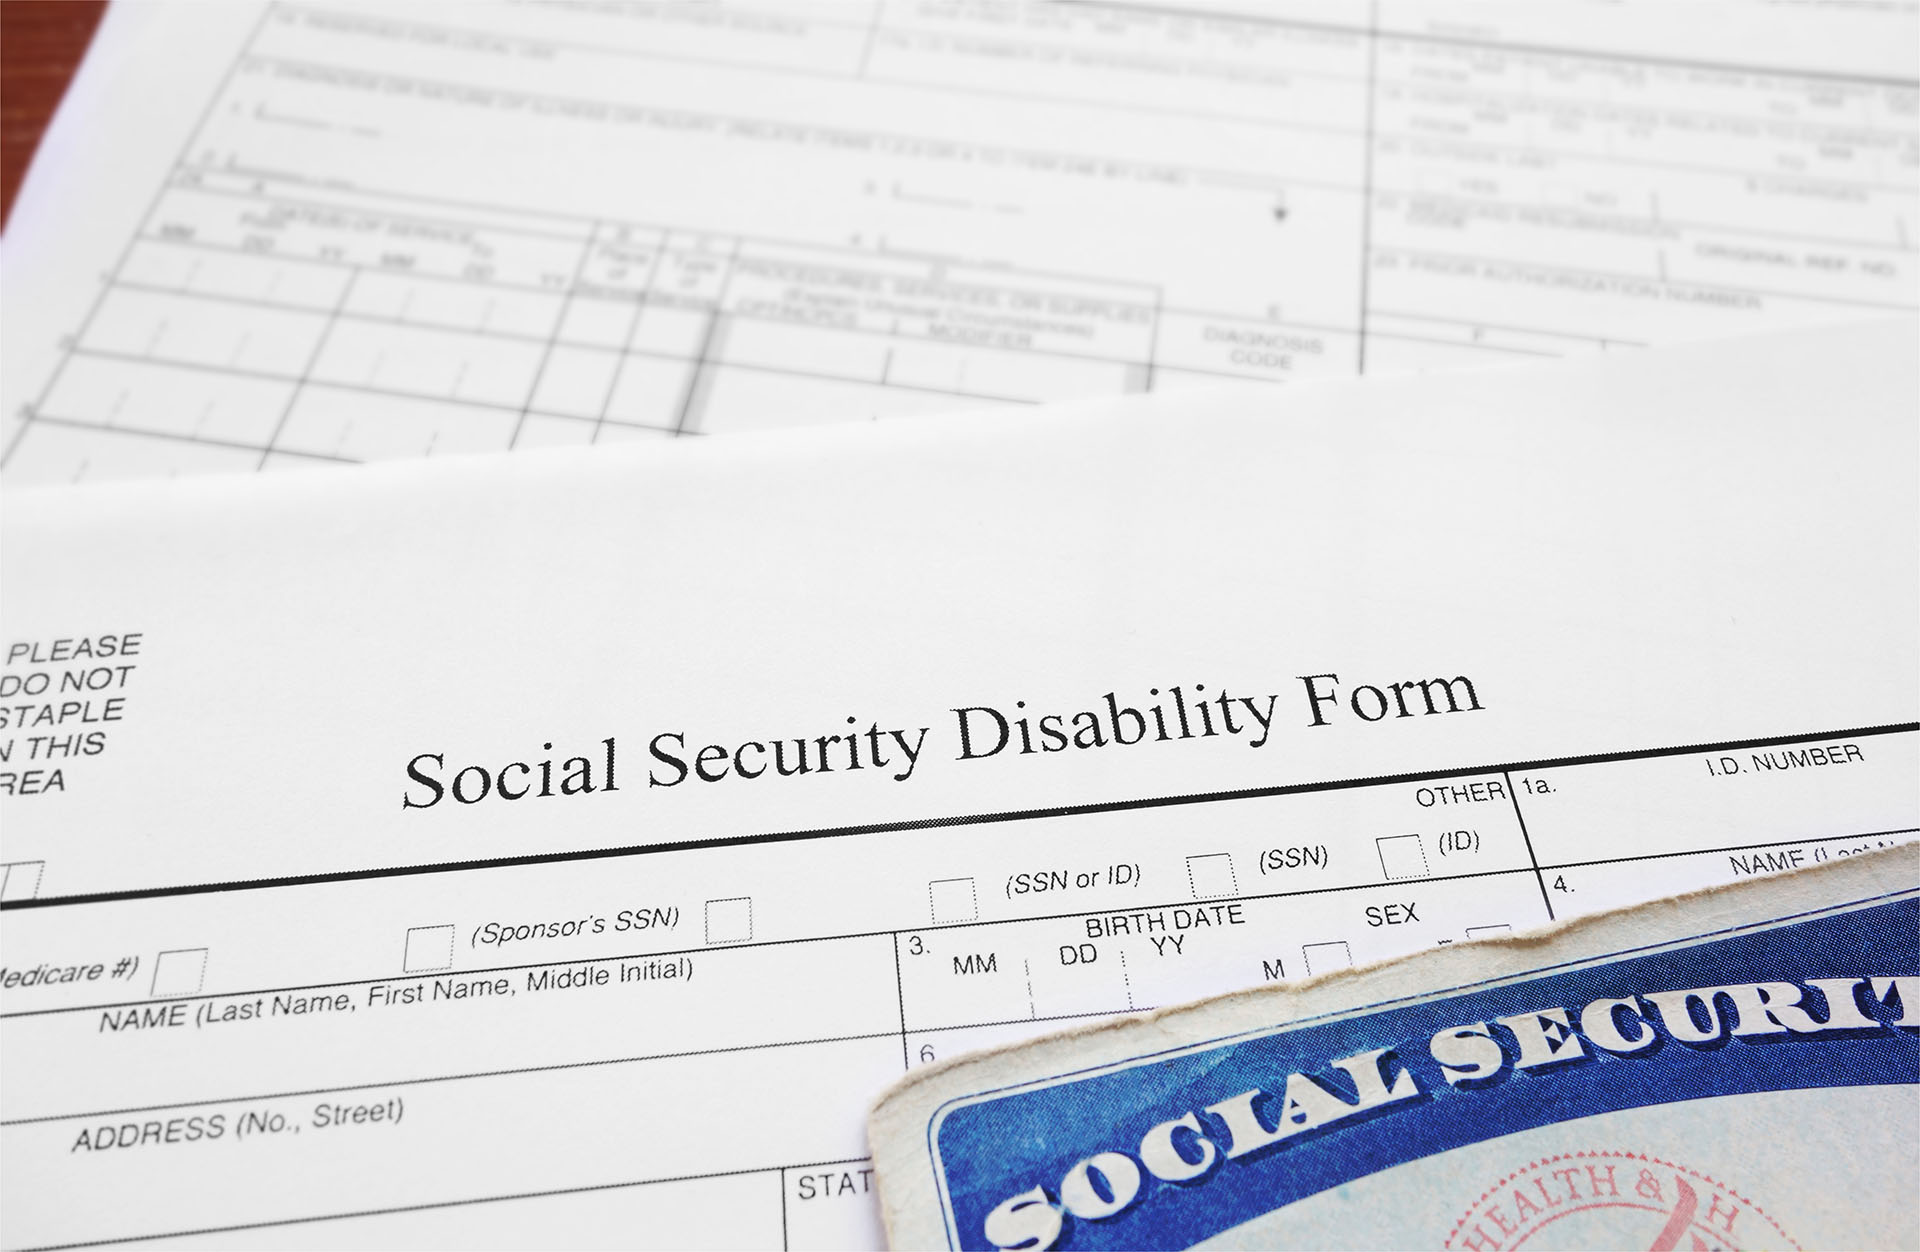 Photo of a Social Security Disability Form